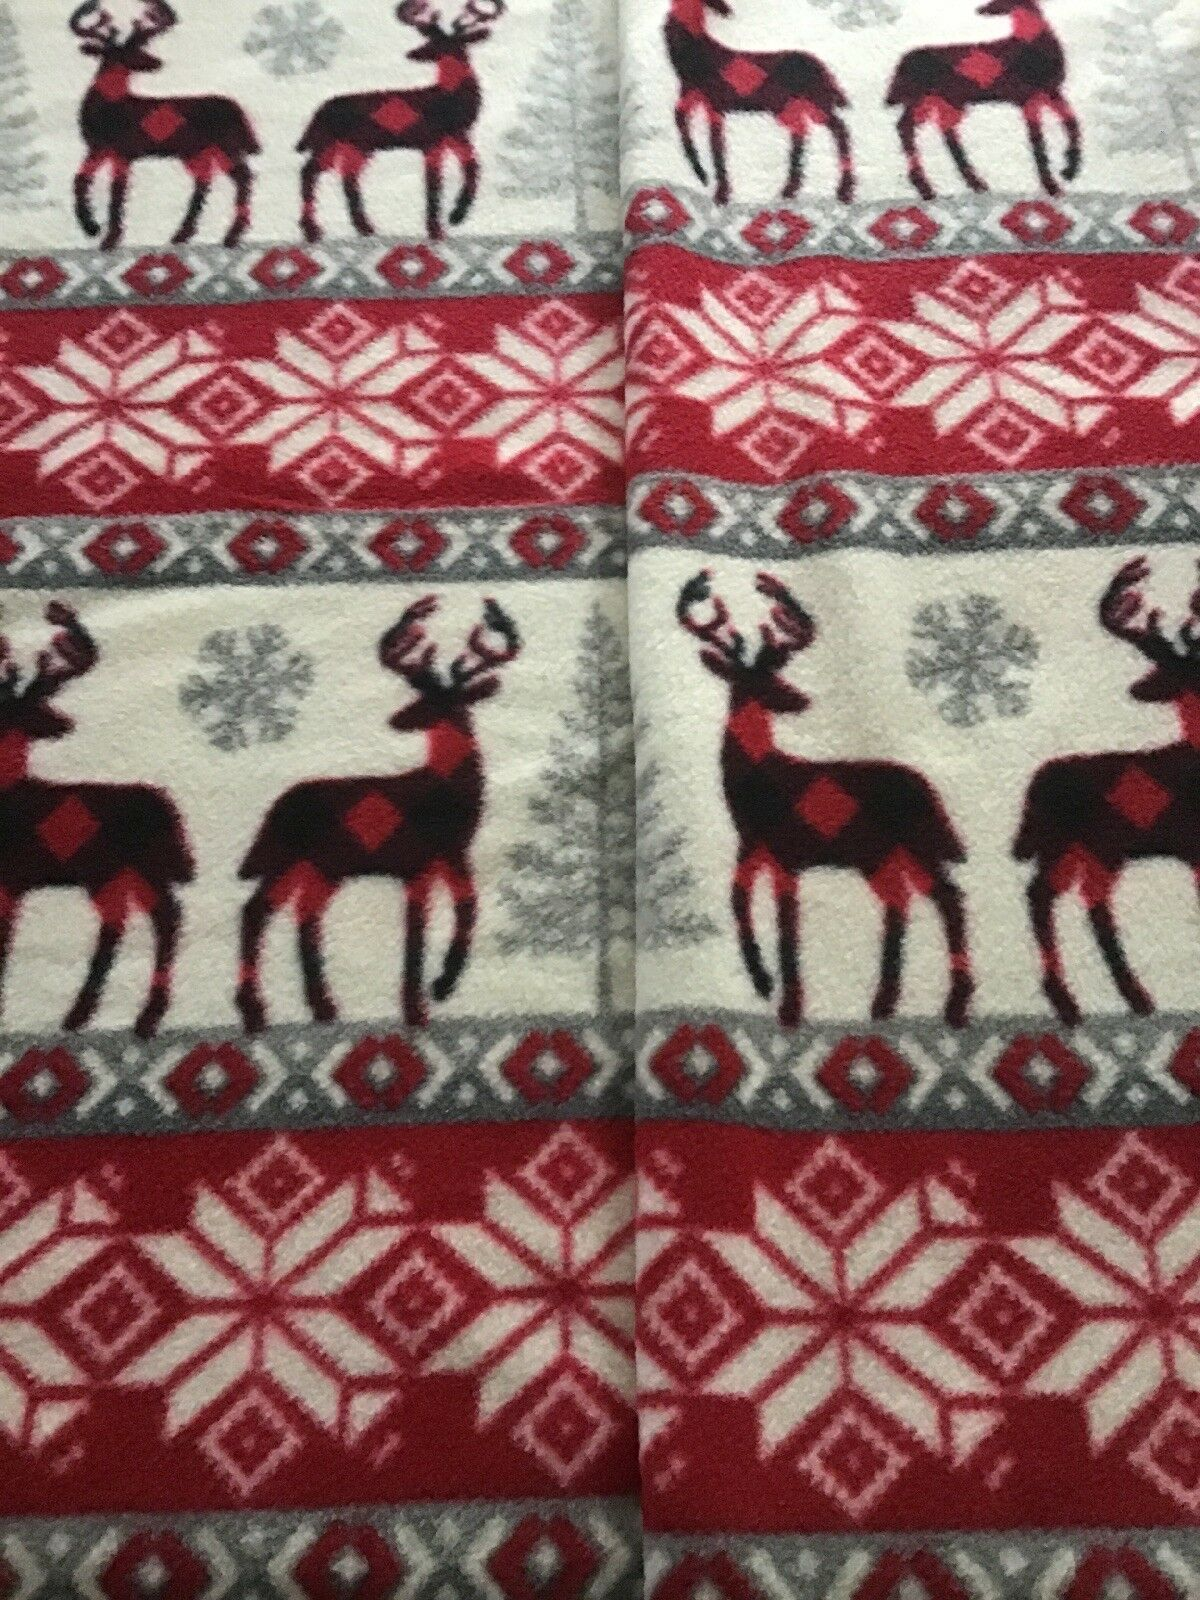 No Sew Fleece With Holiday Nordic Theme Reverses To Red Buffalo Plaid XL